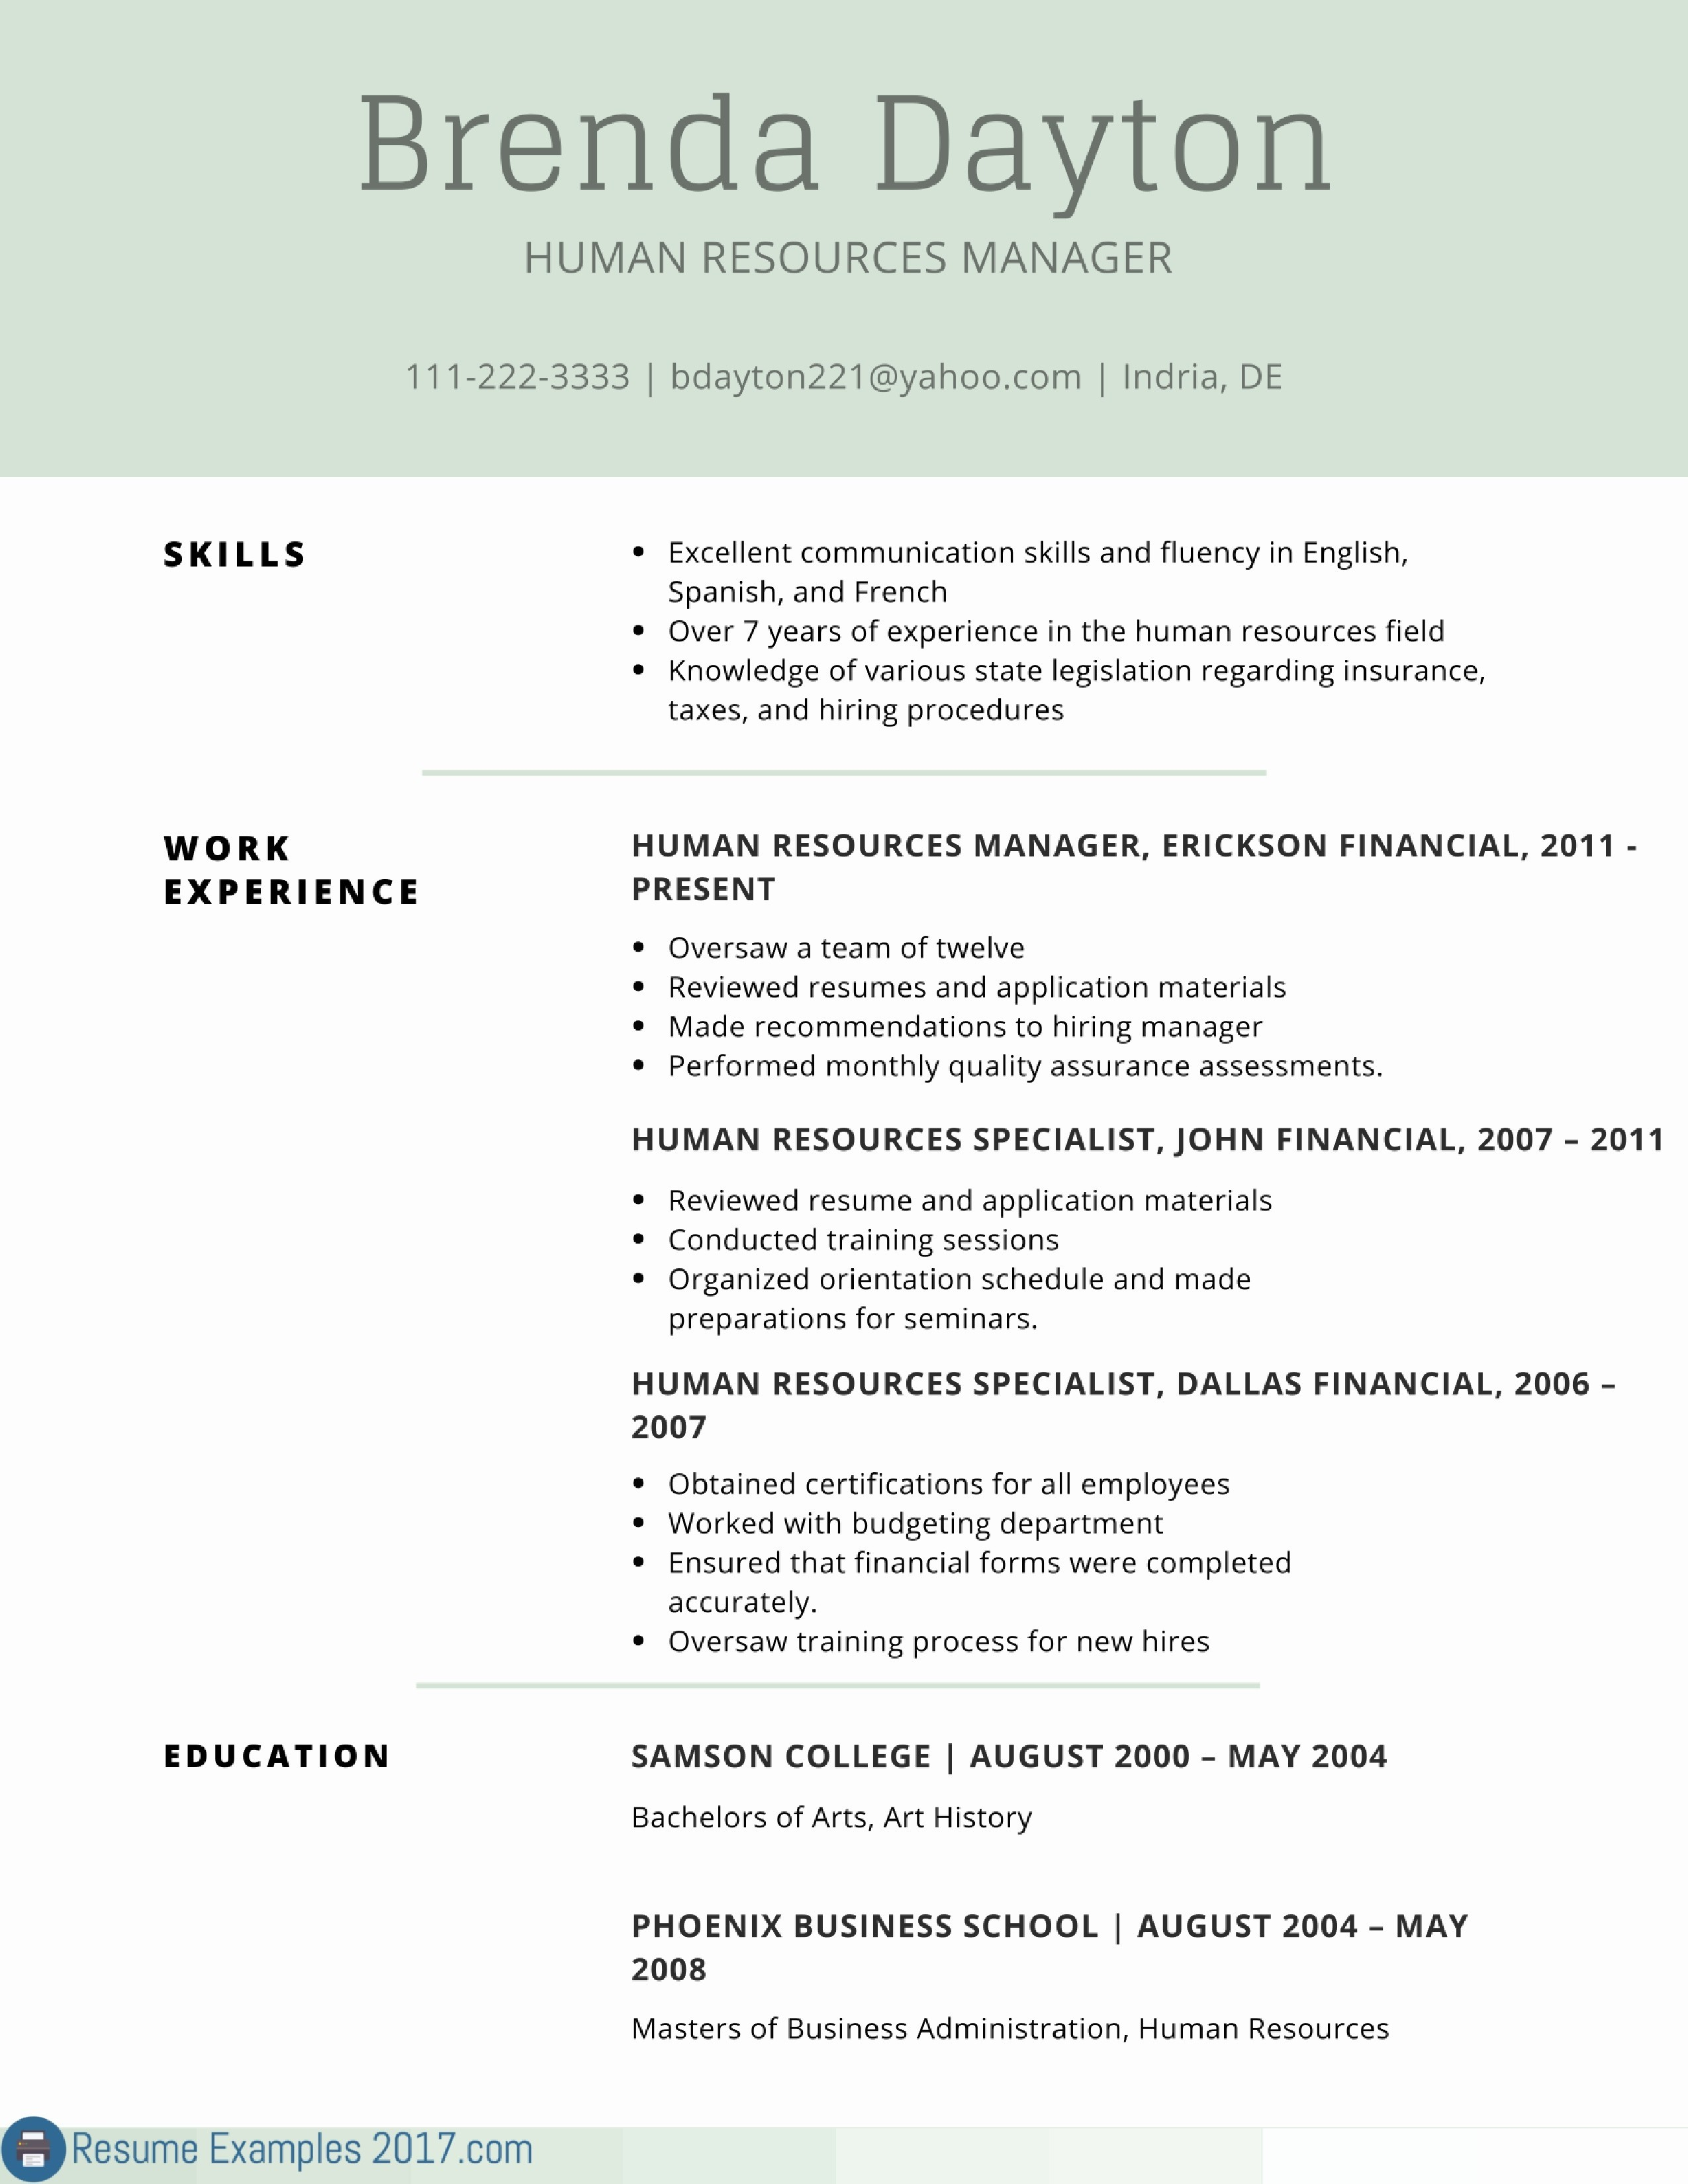 Perfect Resume Template - Fresh New Resume Sample Best Resume Cover Luxury formatted Resume 0d